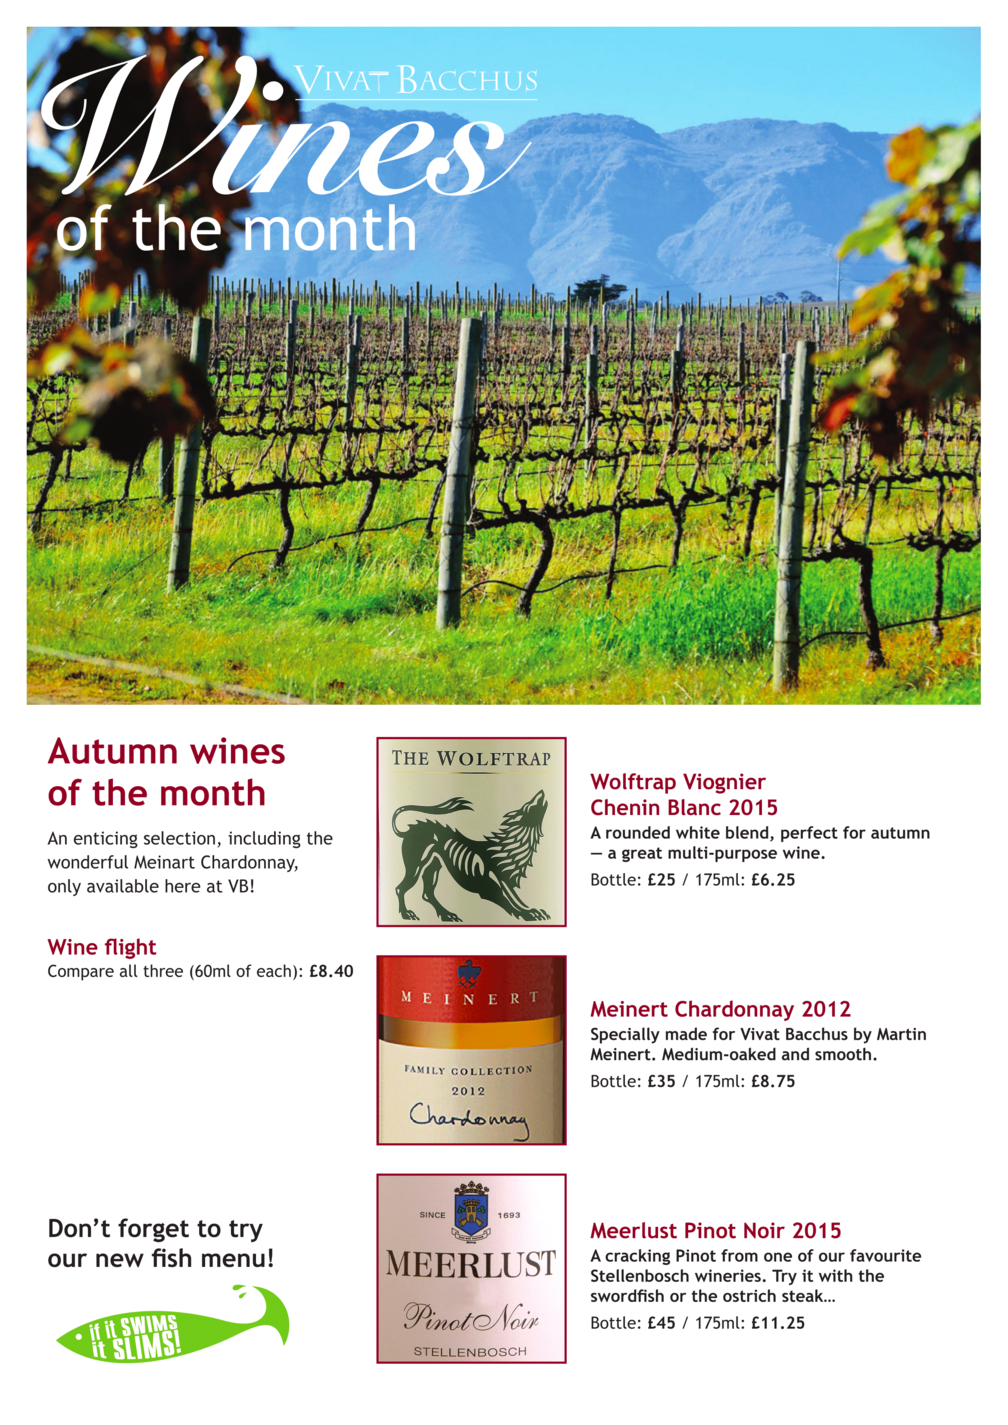 Winery of the month